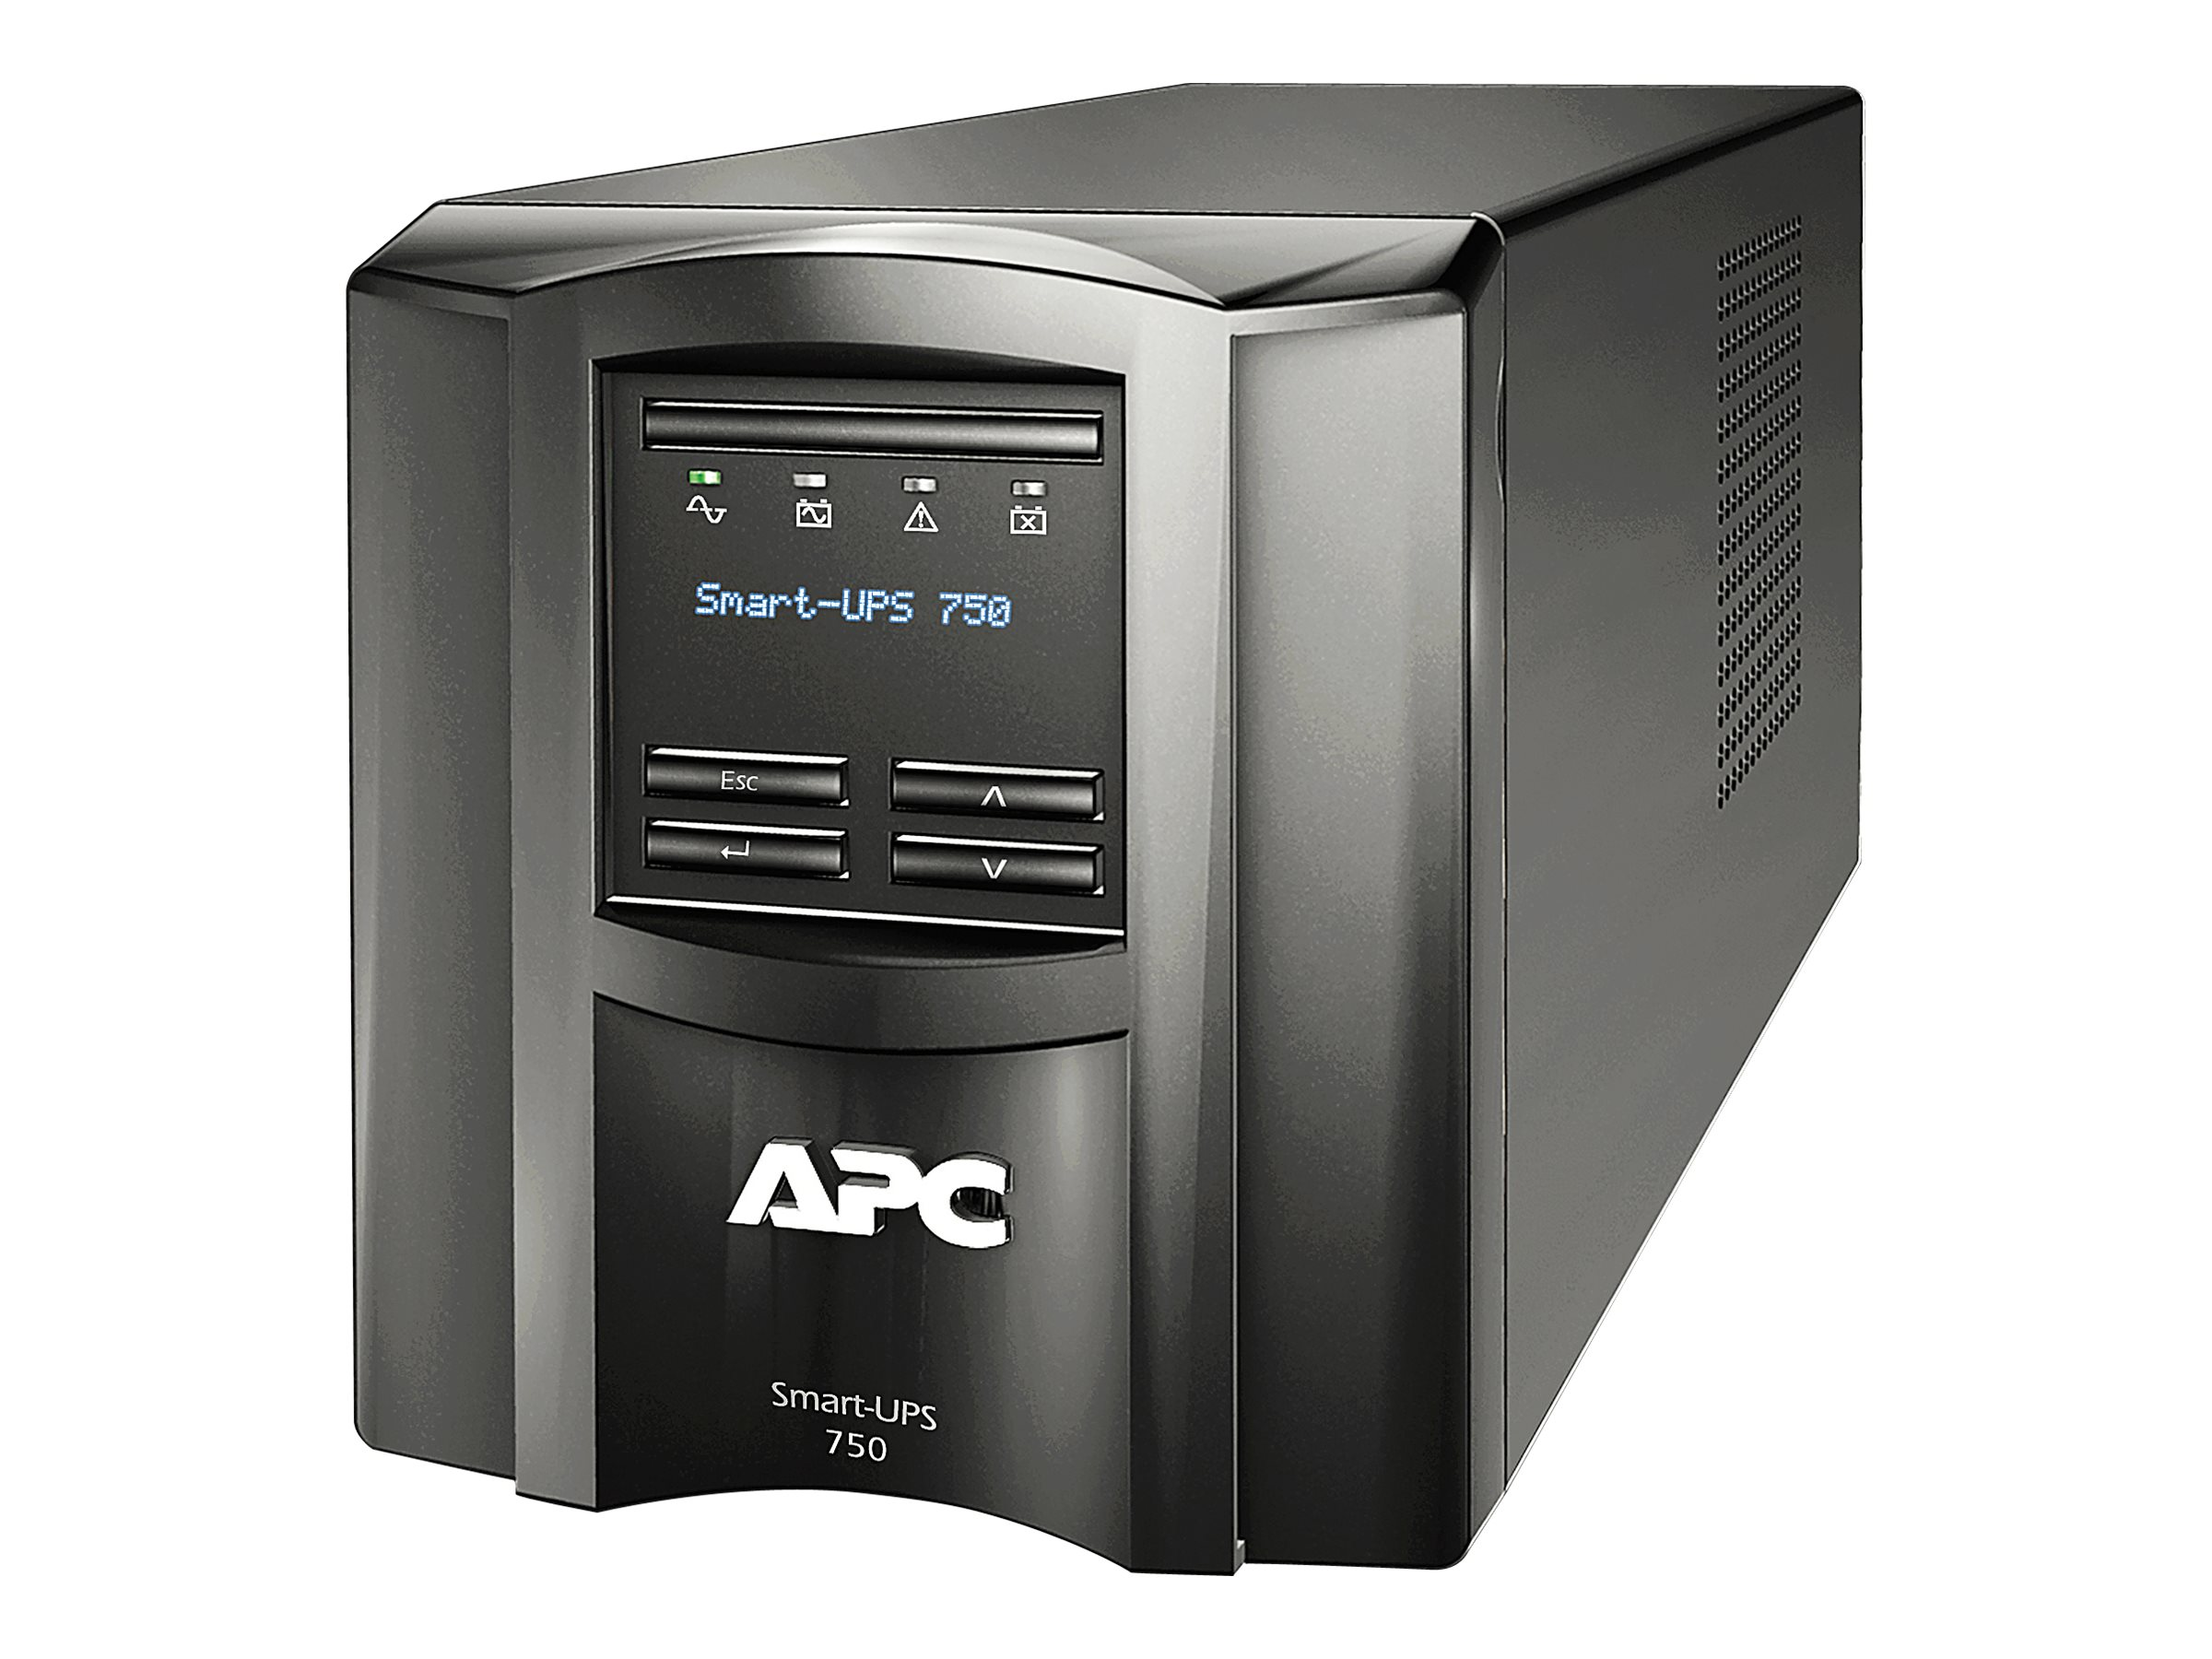 APC Smart UPS 750VA LCD Int'l 230V C14 Input (6) C13 Outlets Serial USB Smartslot, SMT750I, 11847080, Battery Backup/UPS